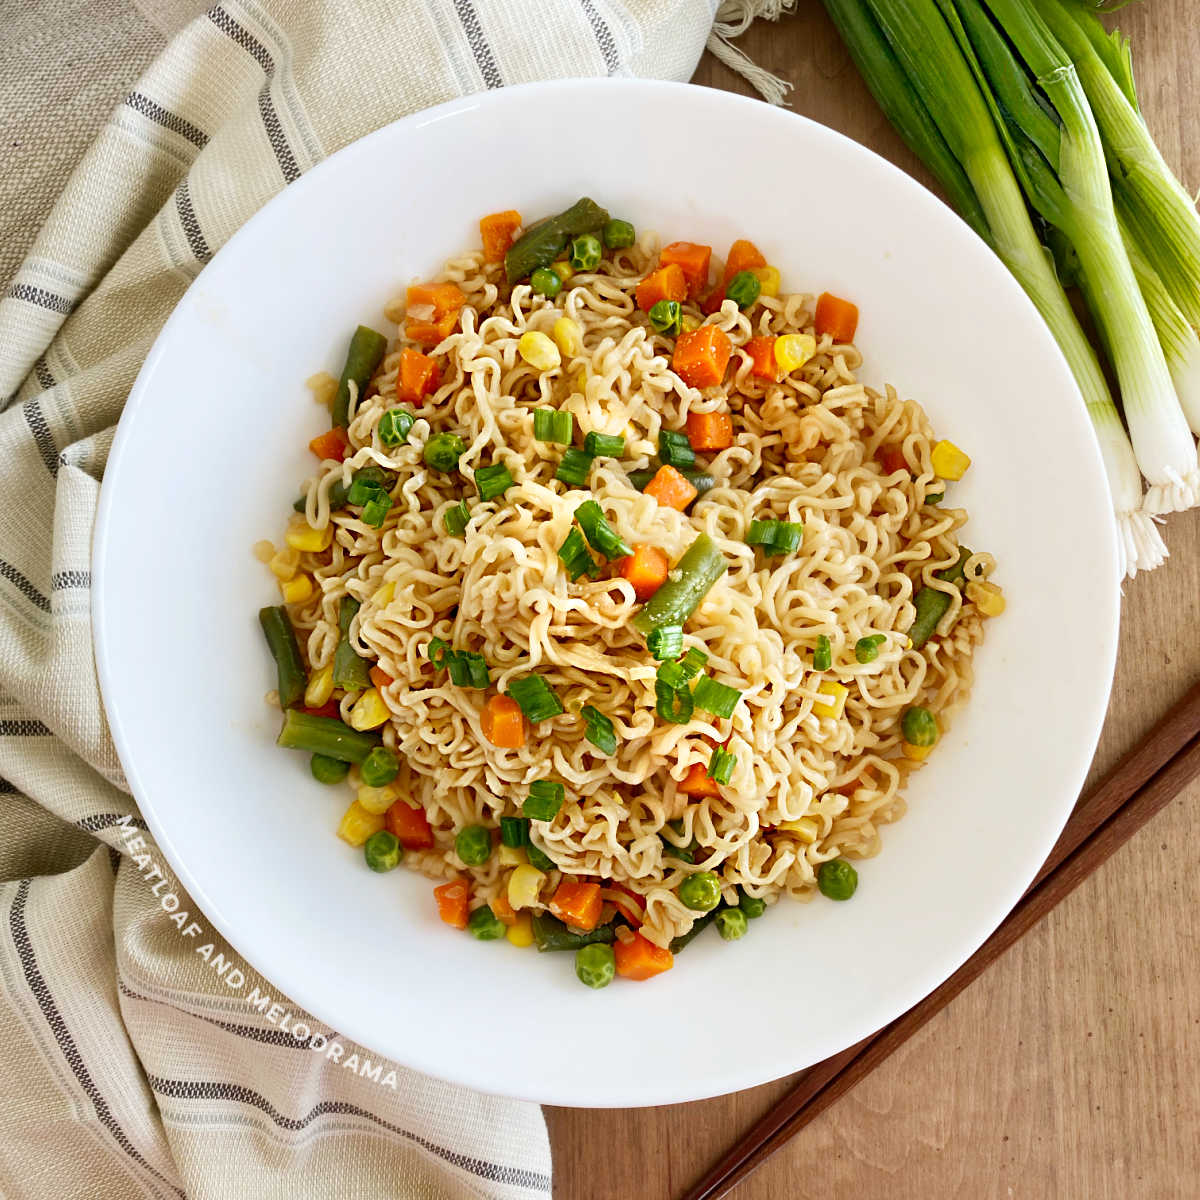 ramen stir fry with noodles and vegetables in a white bowl